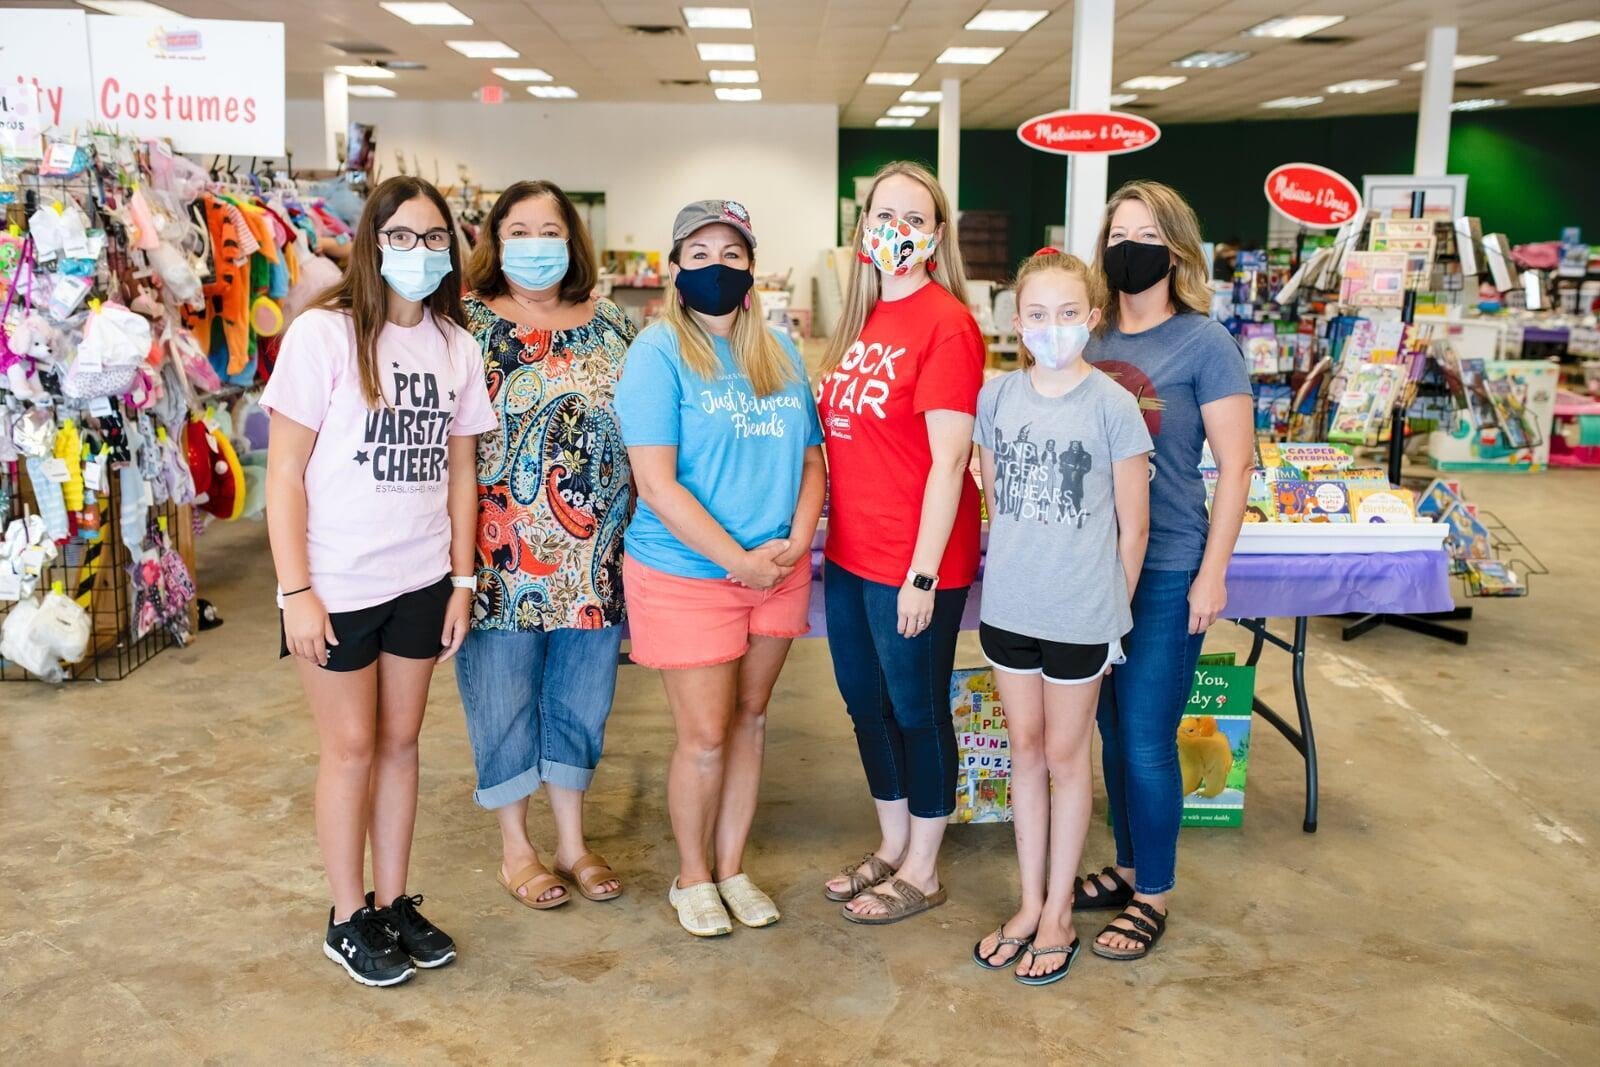 A group of shoppers wearing masks for safety reasons gathers together at the sale to shop.